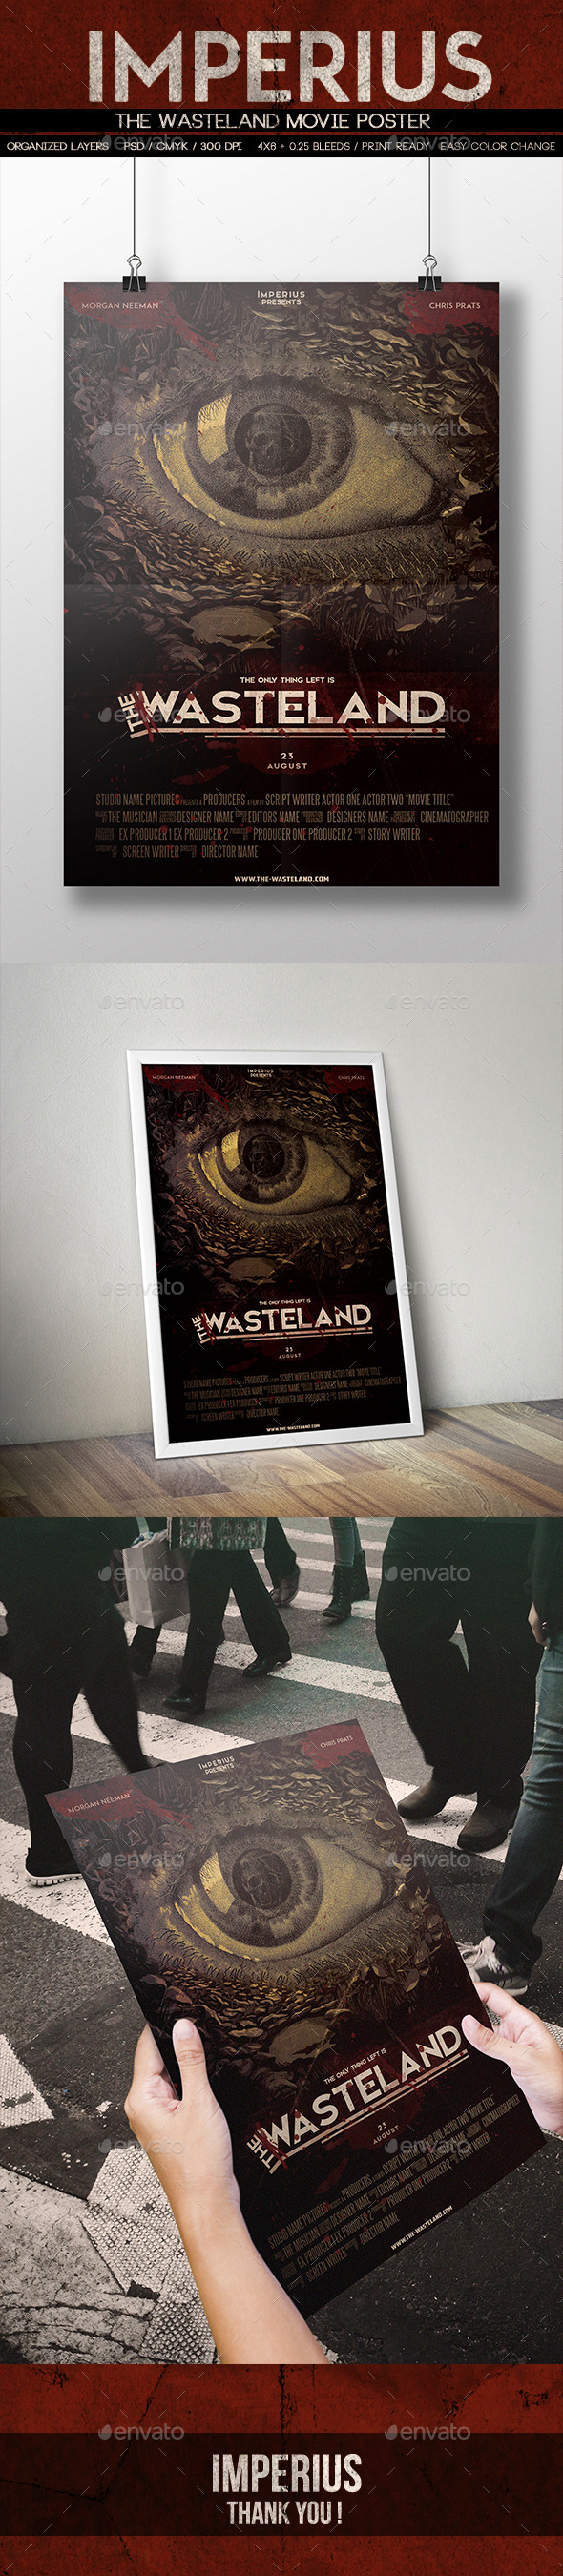 The Wasteland Poster - Flyers Print Templates